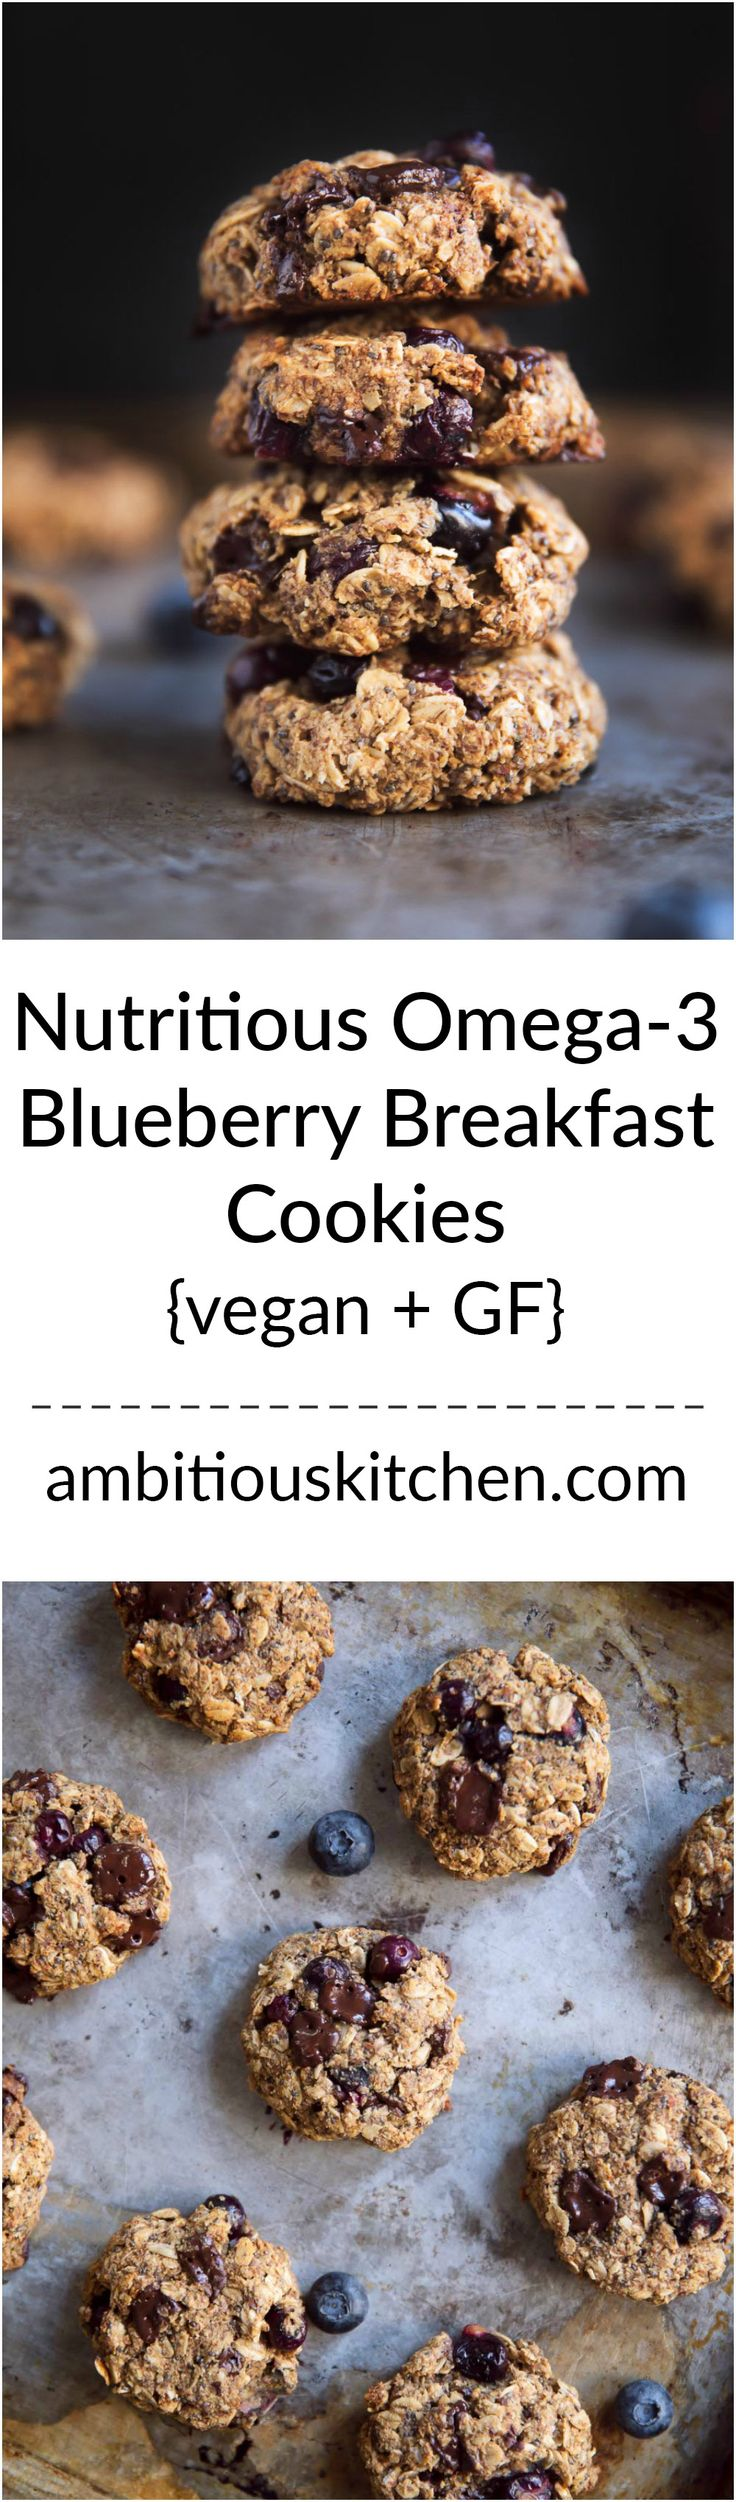 One bowl, easy to make, nutritious vegan & gluten free blueberry breakfast cookies are the best way to start your day! They taste exactly like a blueberry muffin! Packed with chia, flax, oats, walnuts & more!